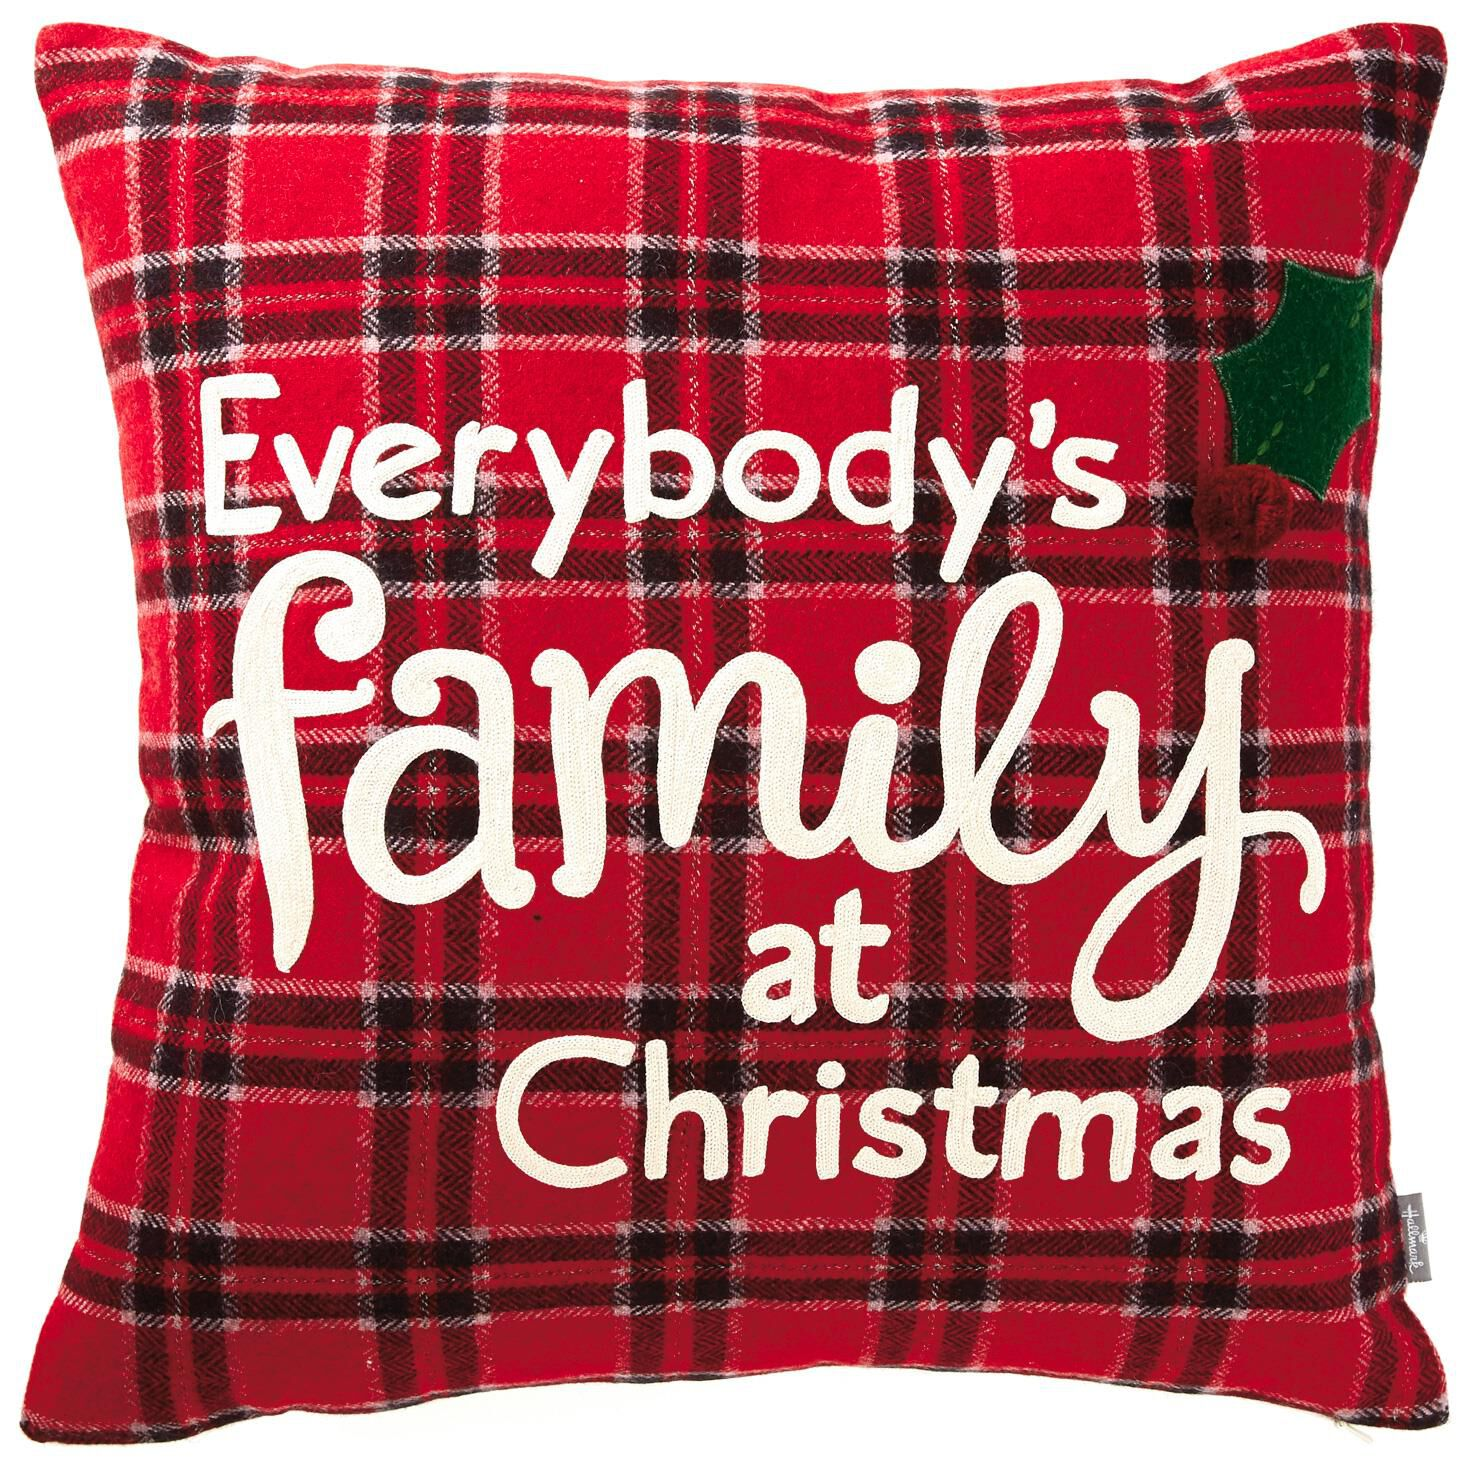 "Family at Christmas Throw Pillow, 17"" - Pillows"